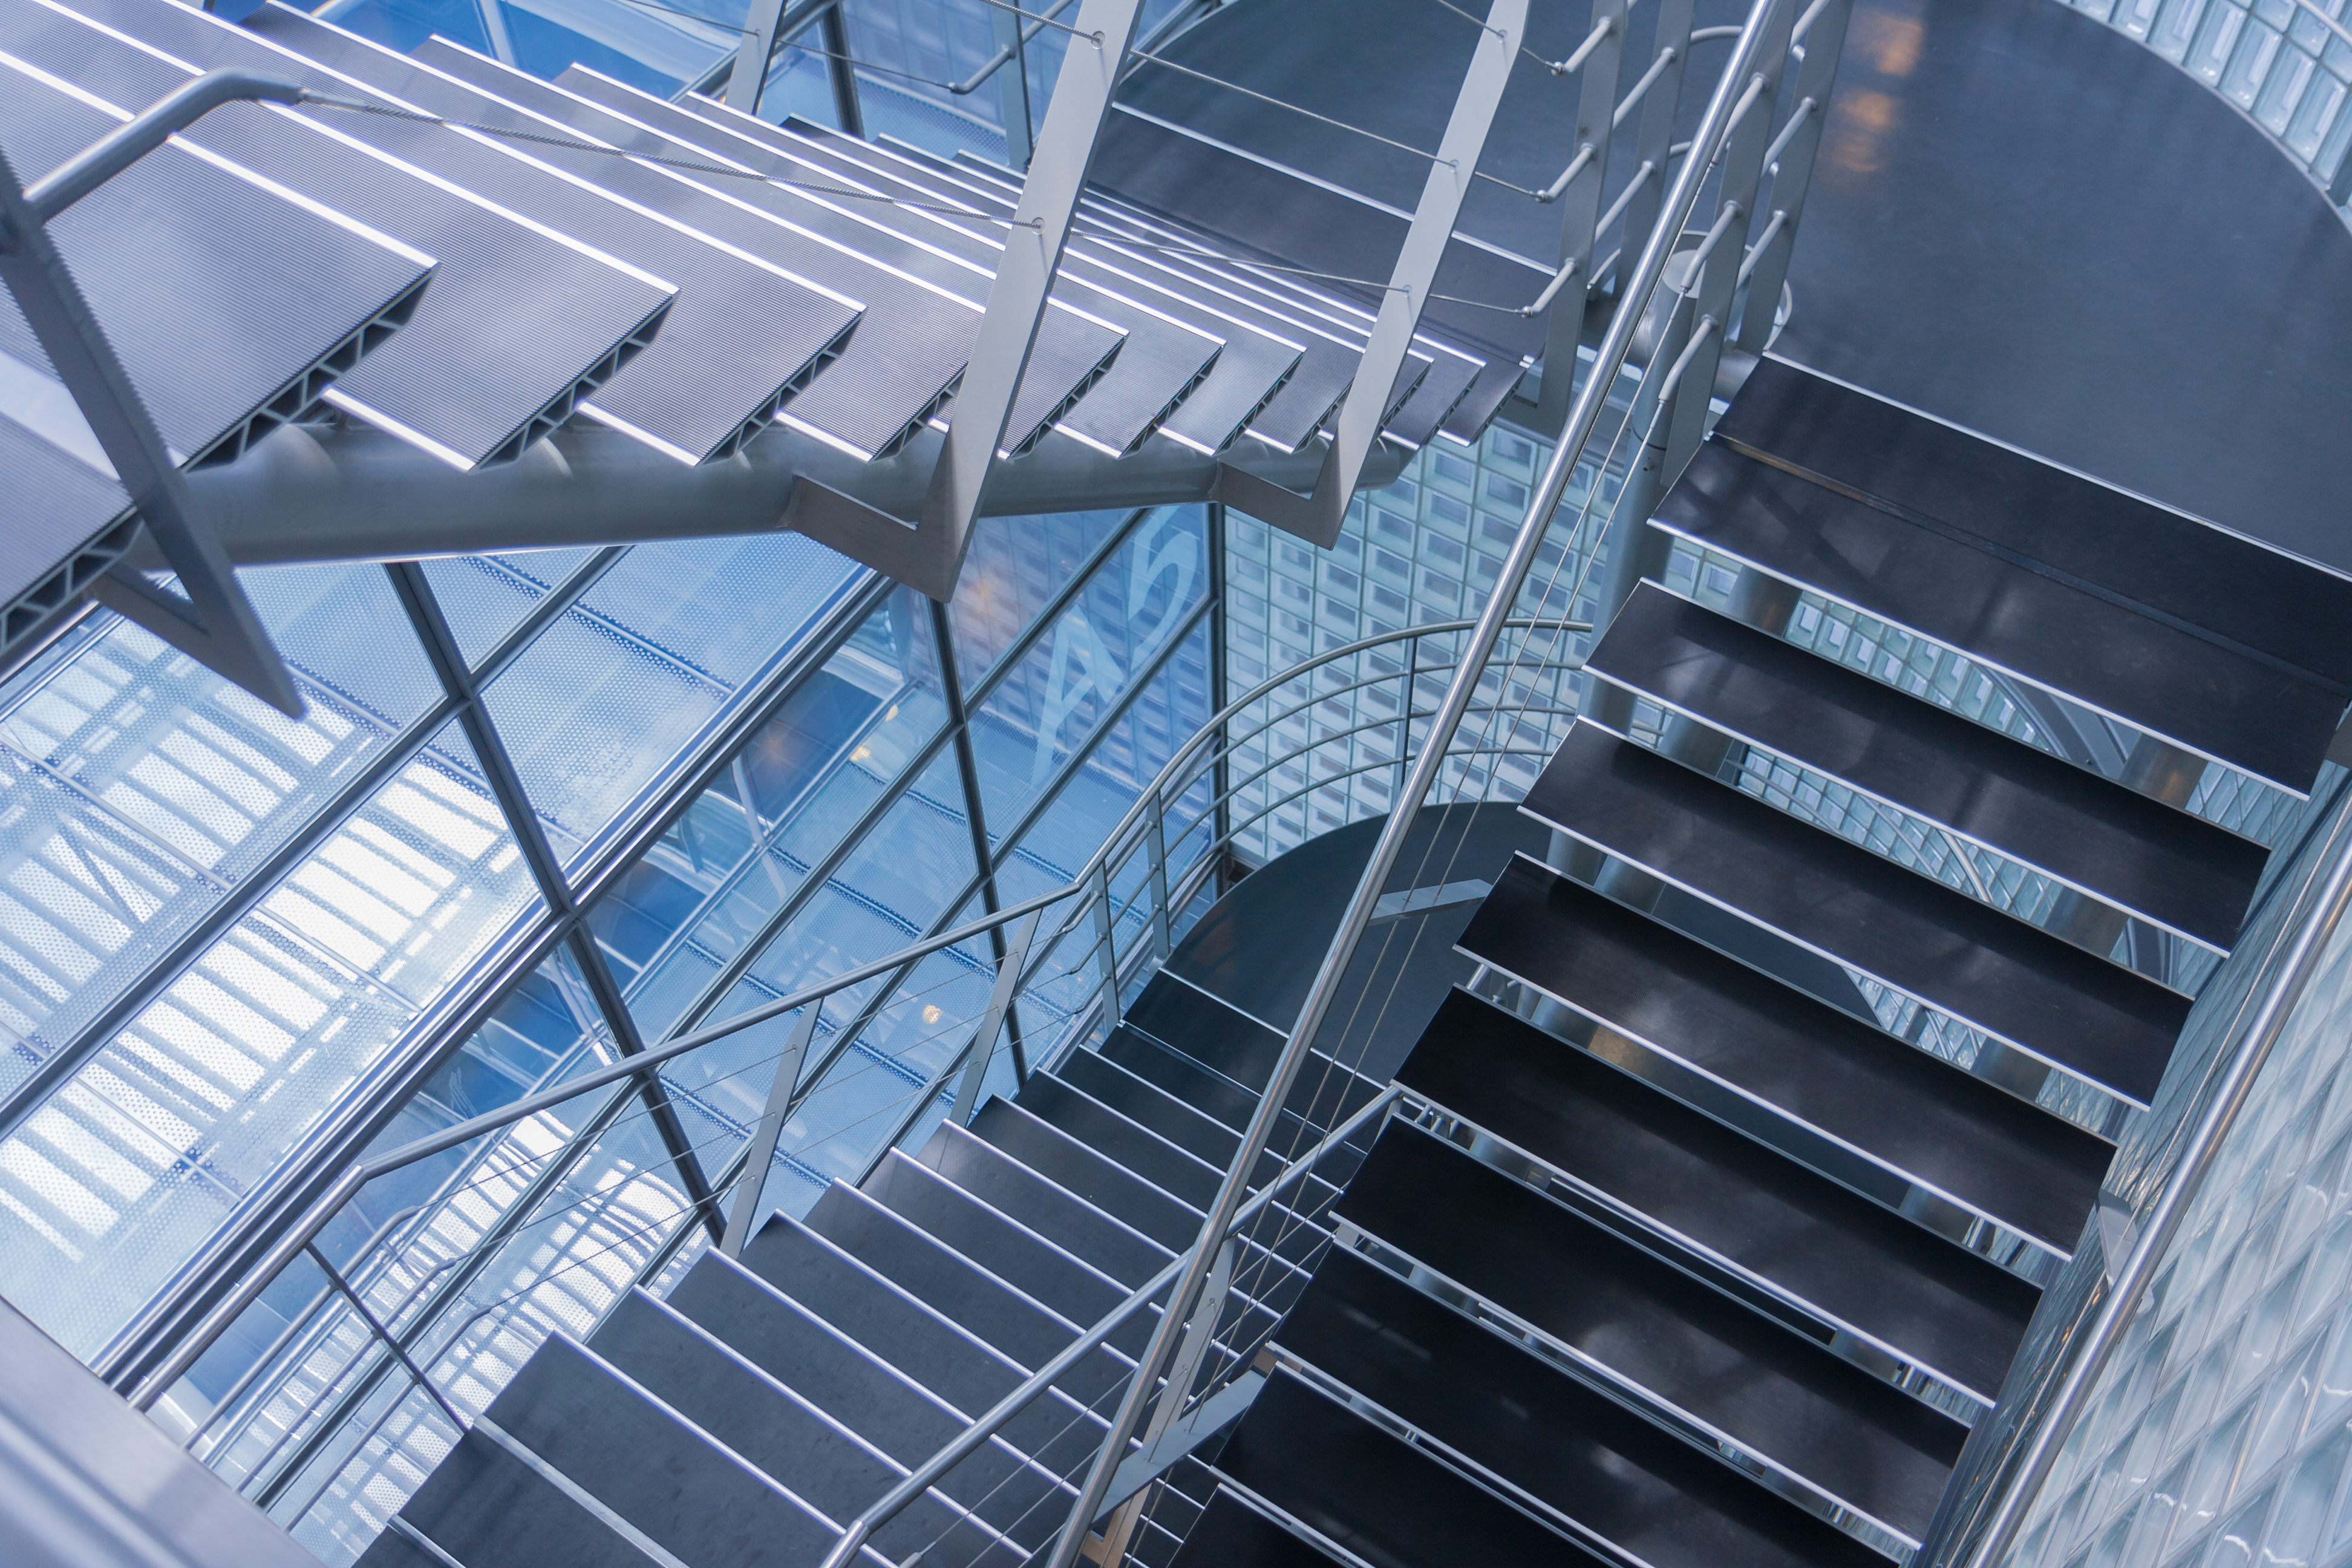 Stainless Steel Stairwell